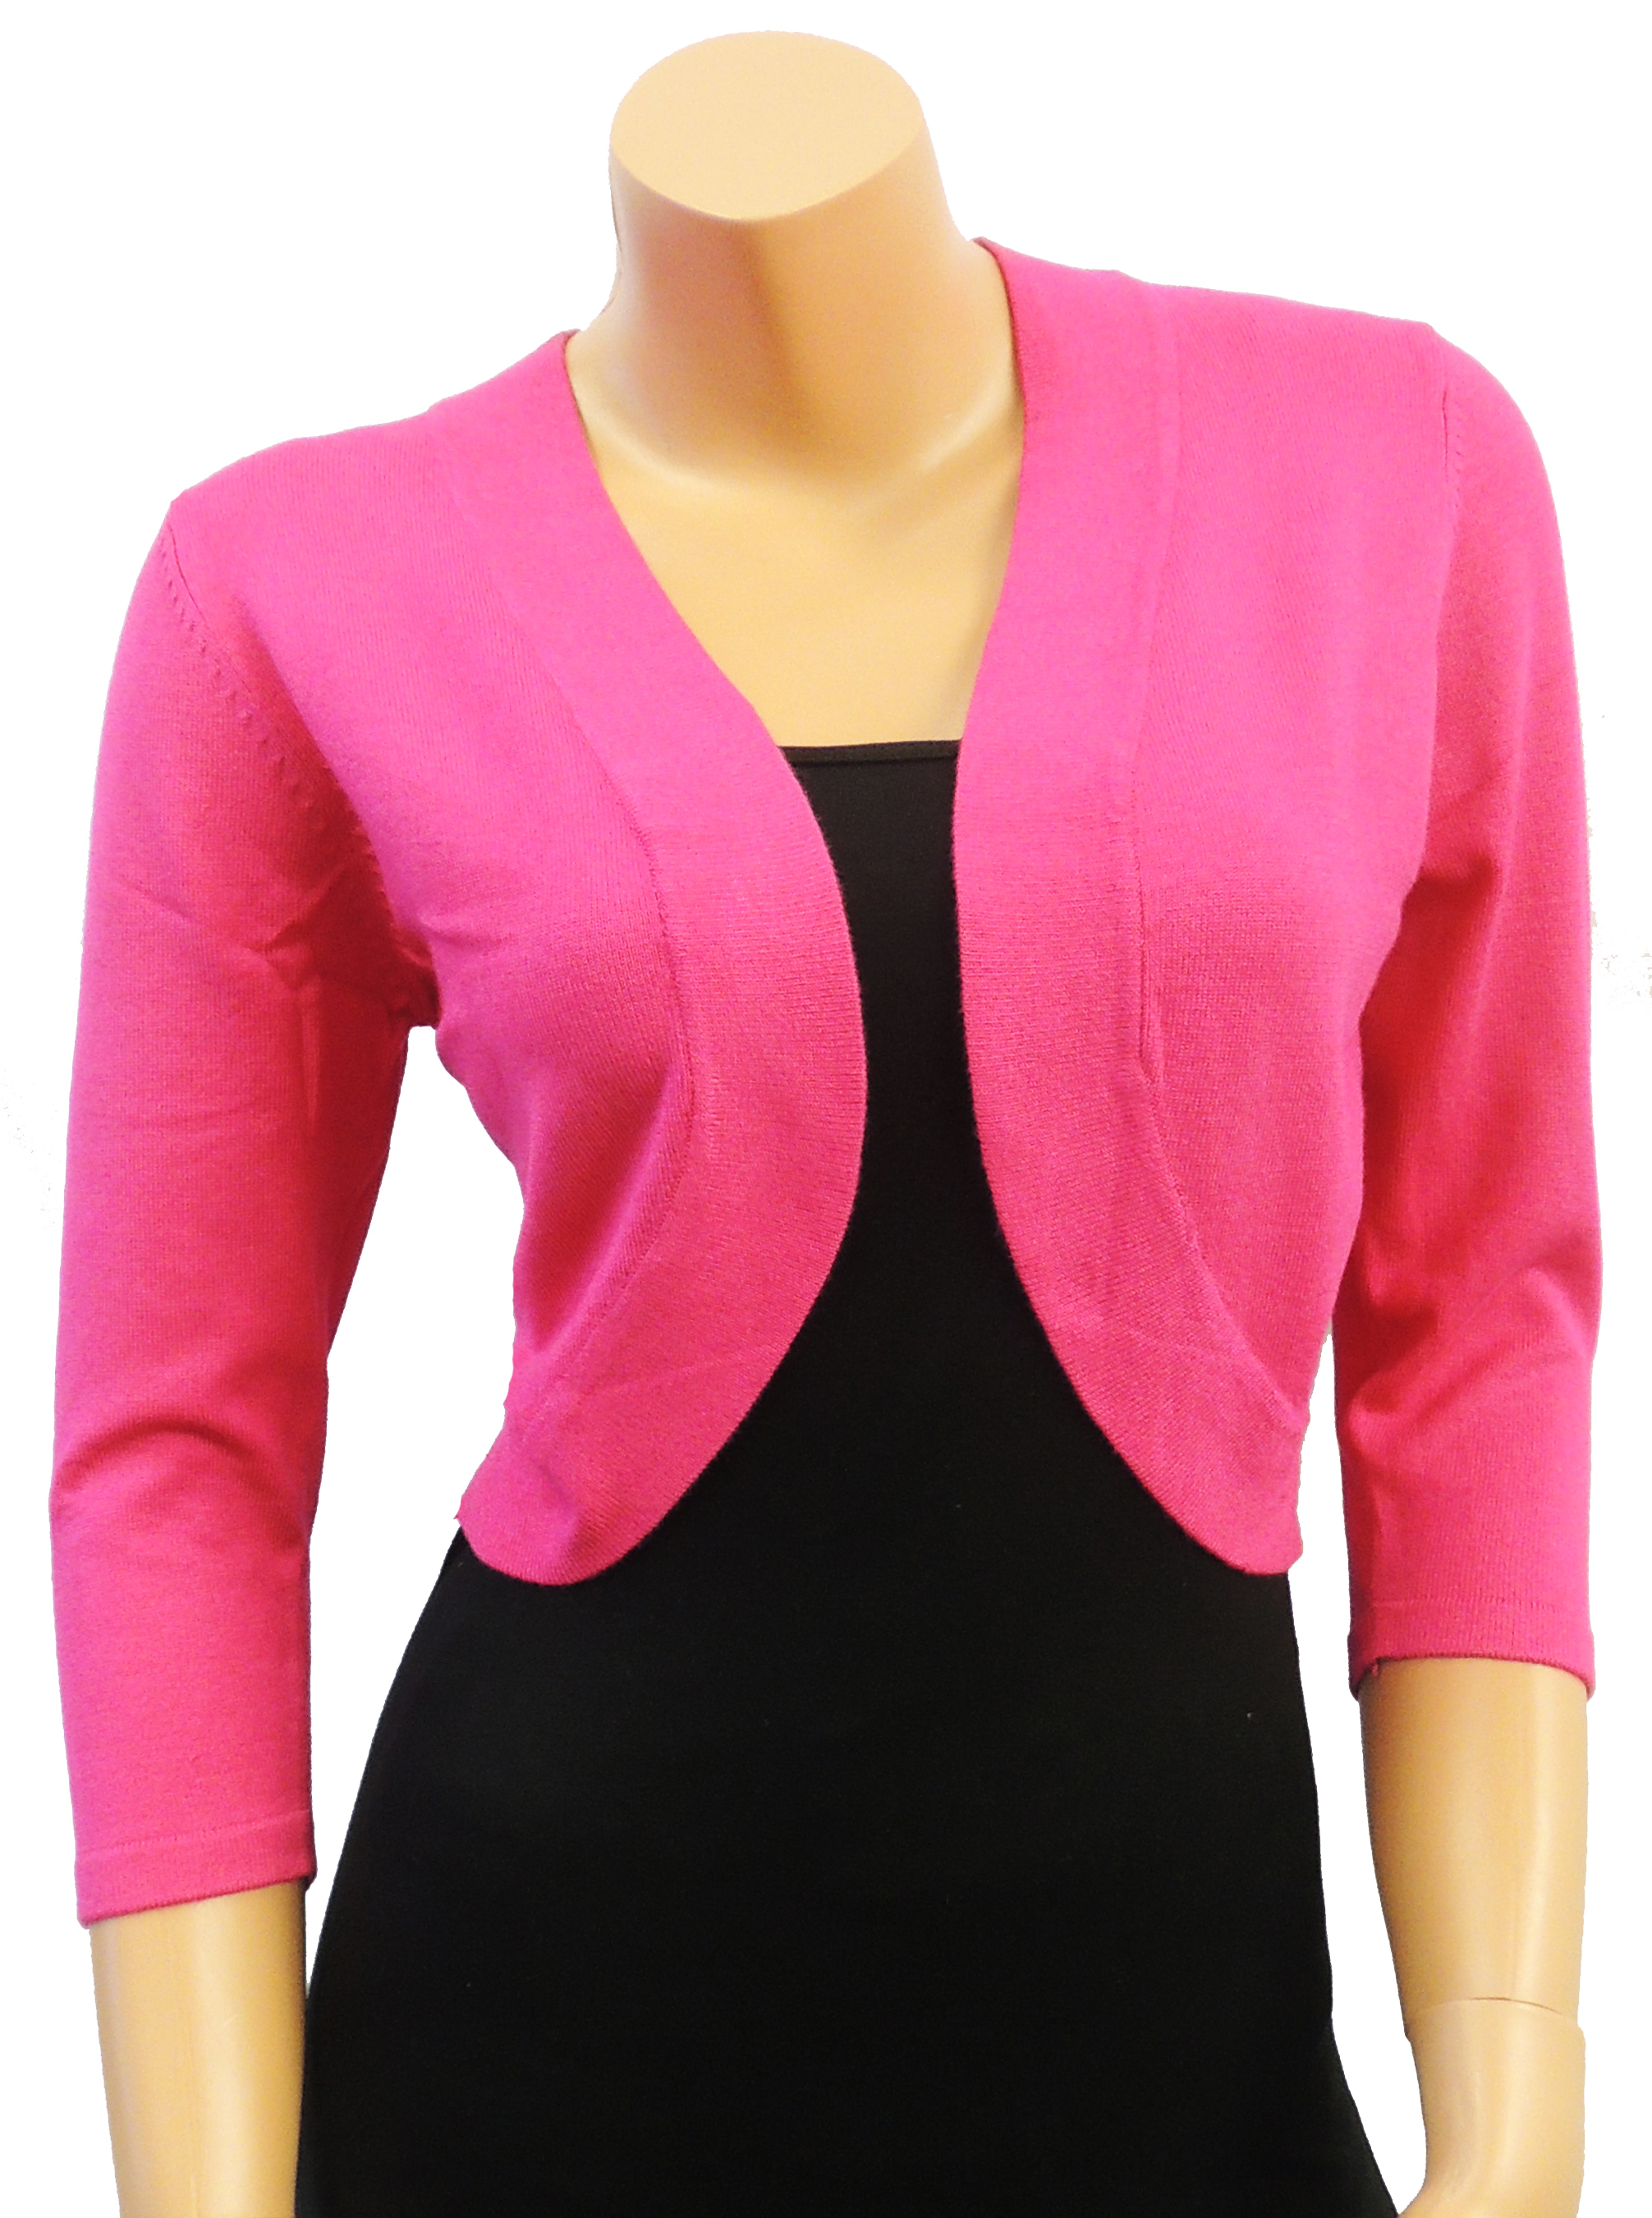 New Vintage style Retro 1940's 1950's Bolero Shrug Sweater ...